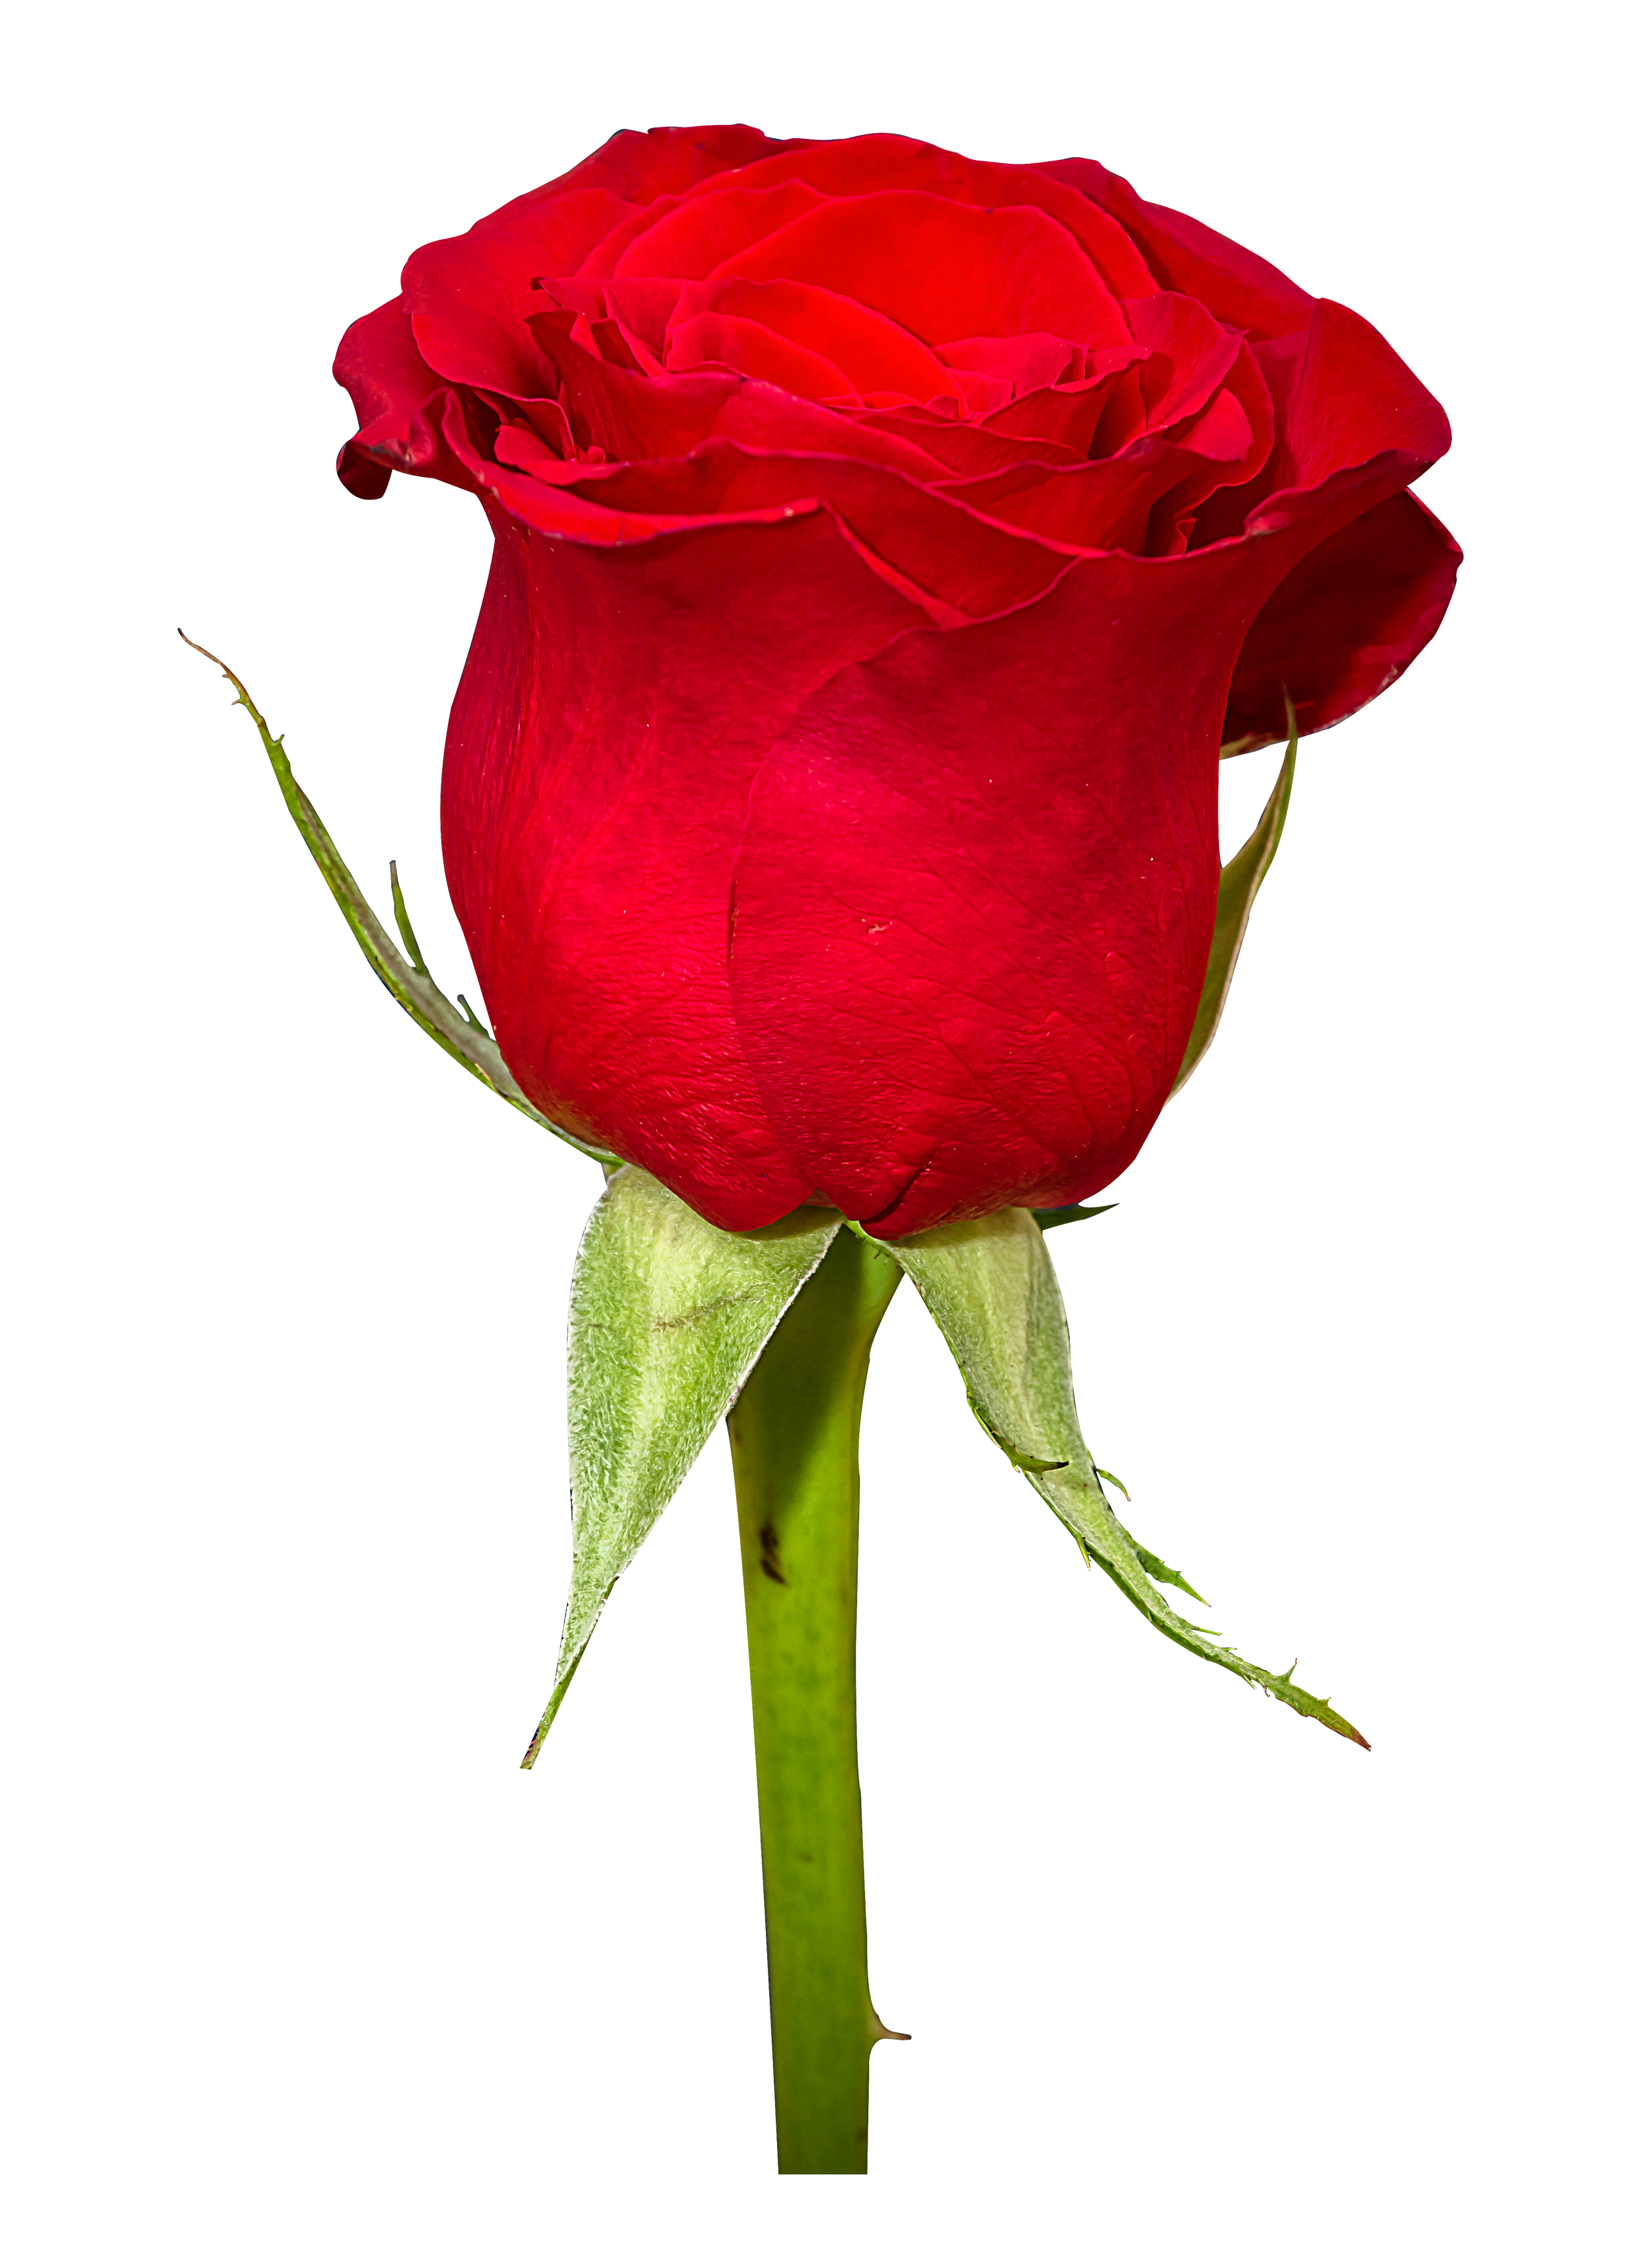 Red Roses For Women Png image #39852